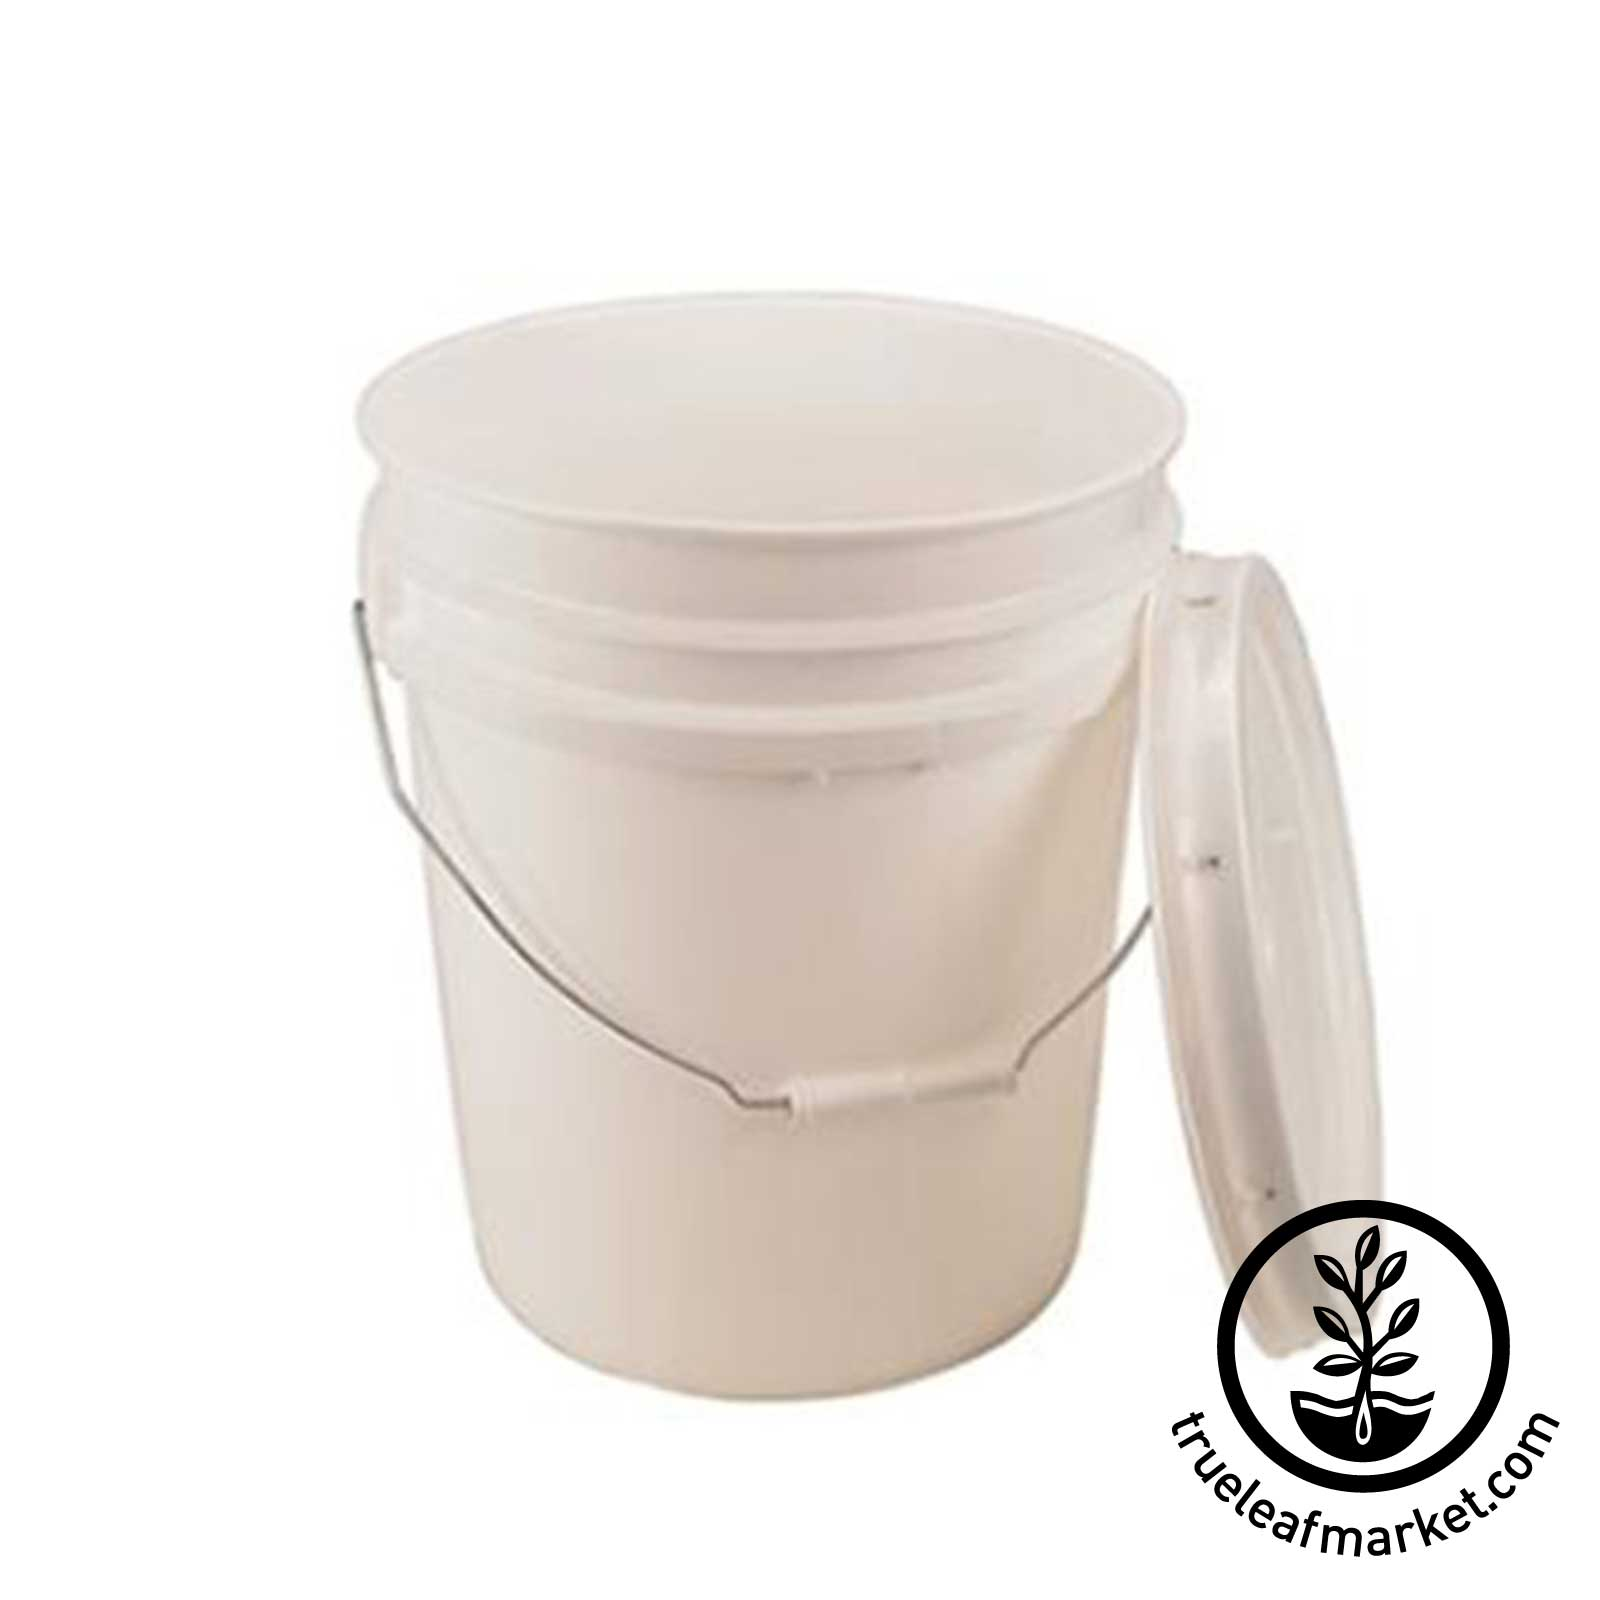 5 Gallon Bucket with Lid 5 gallon bucket, 5 gallon pail, empty bucket with lid, empty pail with lid, food grade plastic